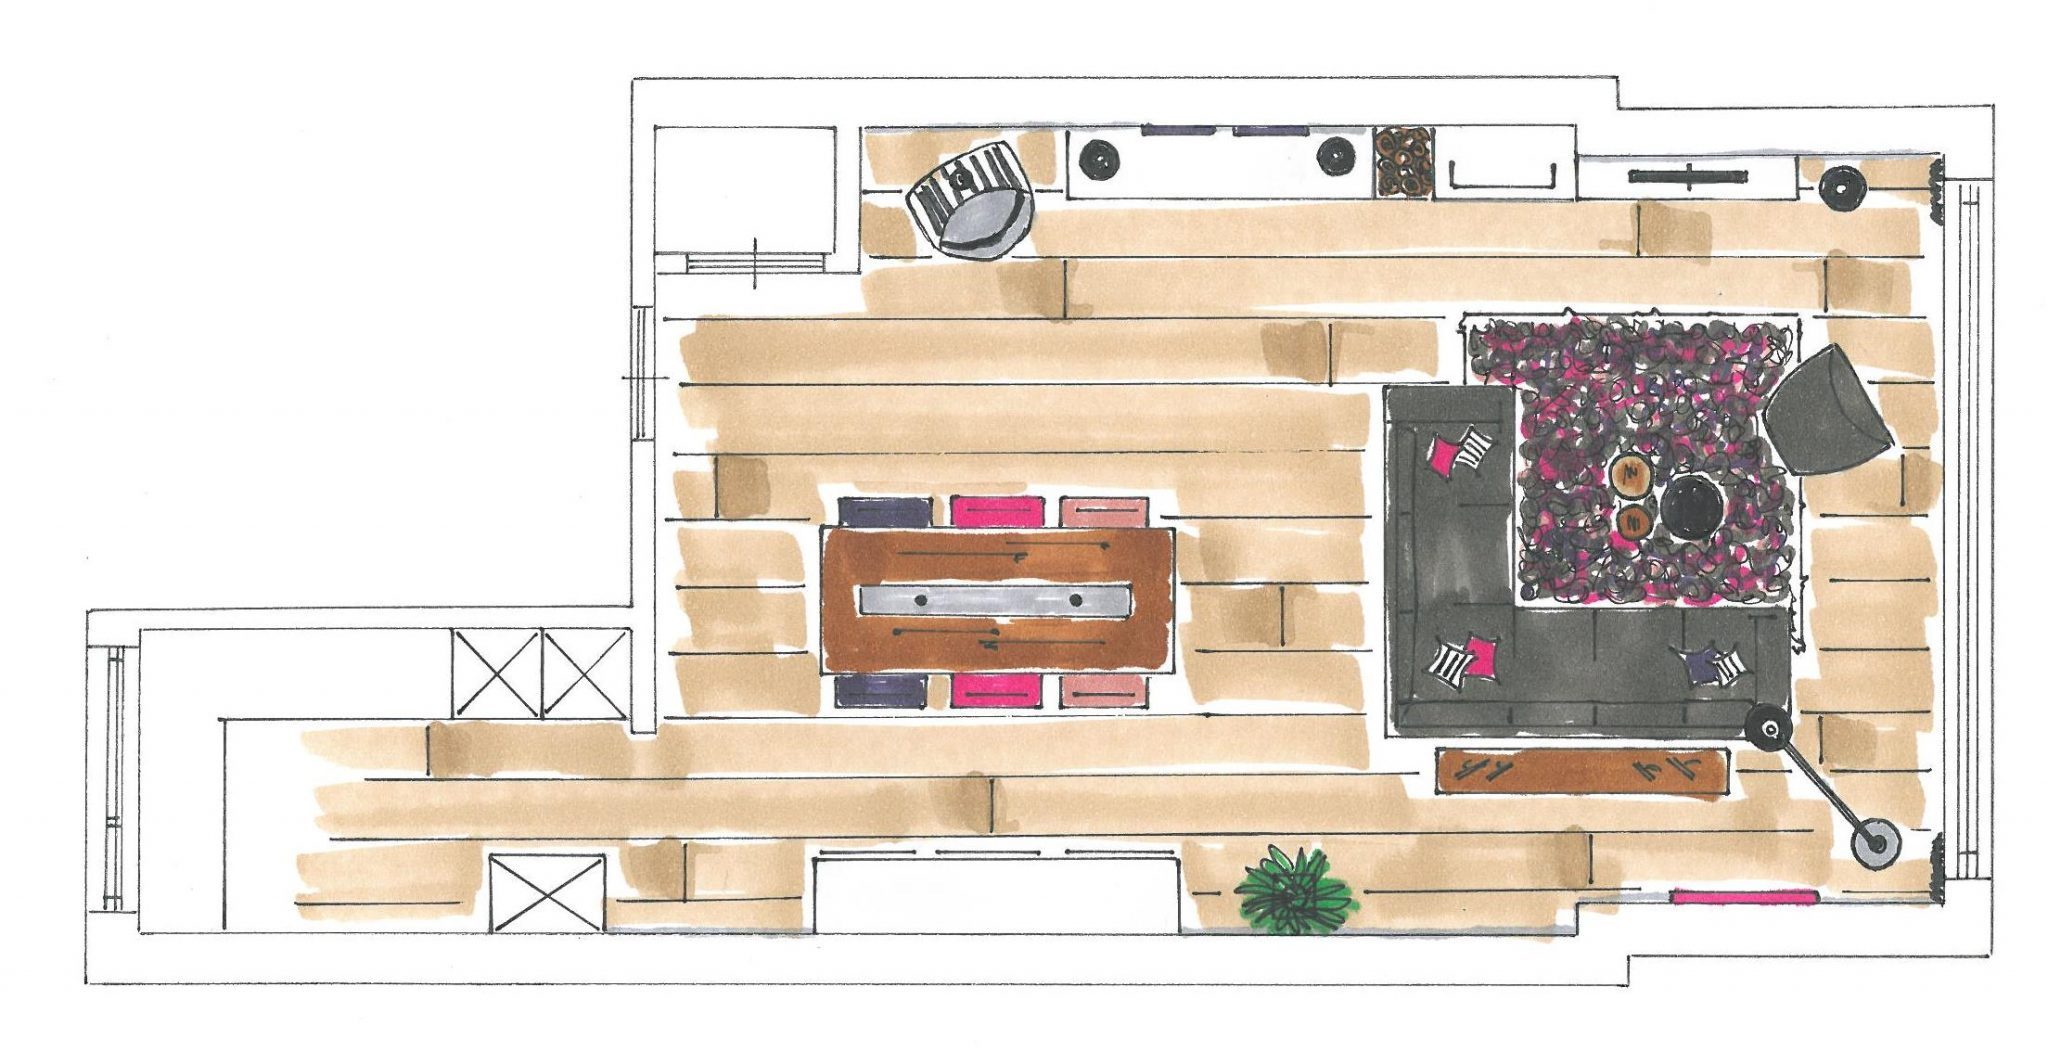 Beautiful Plattegrond Woonkamer Images - New Home Design 2018 ...